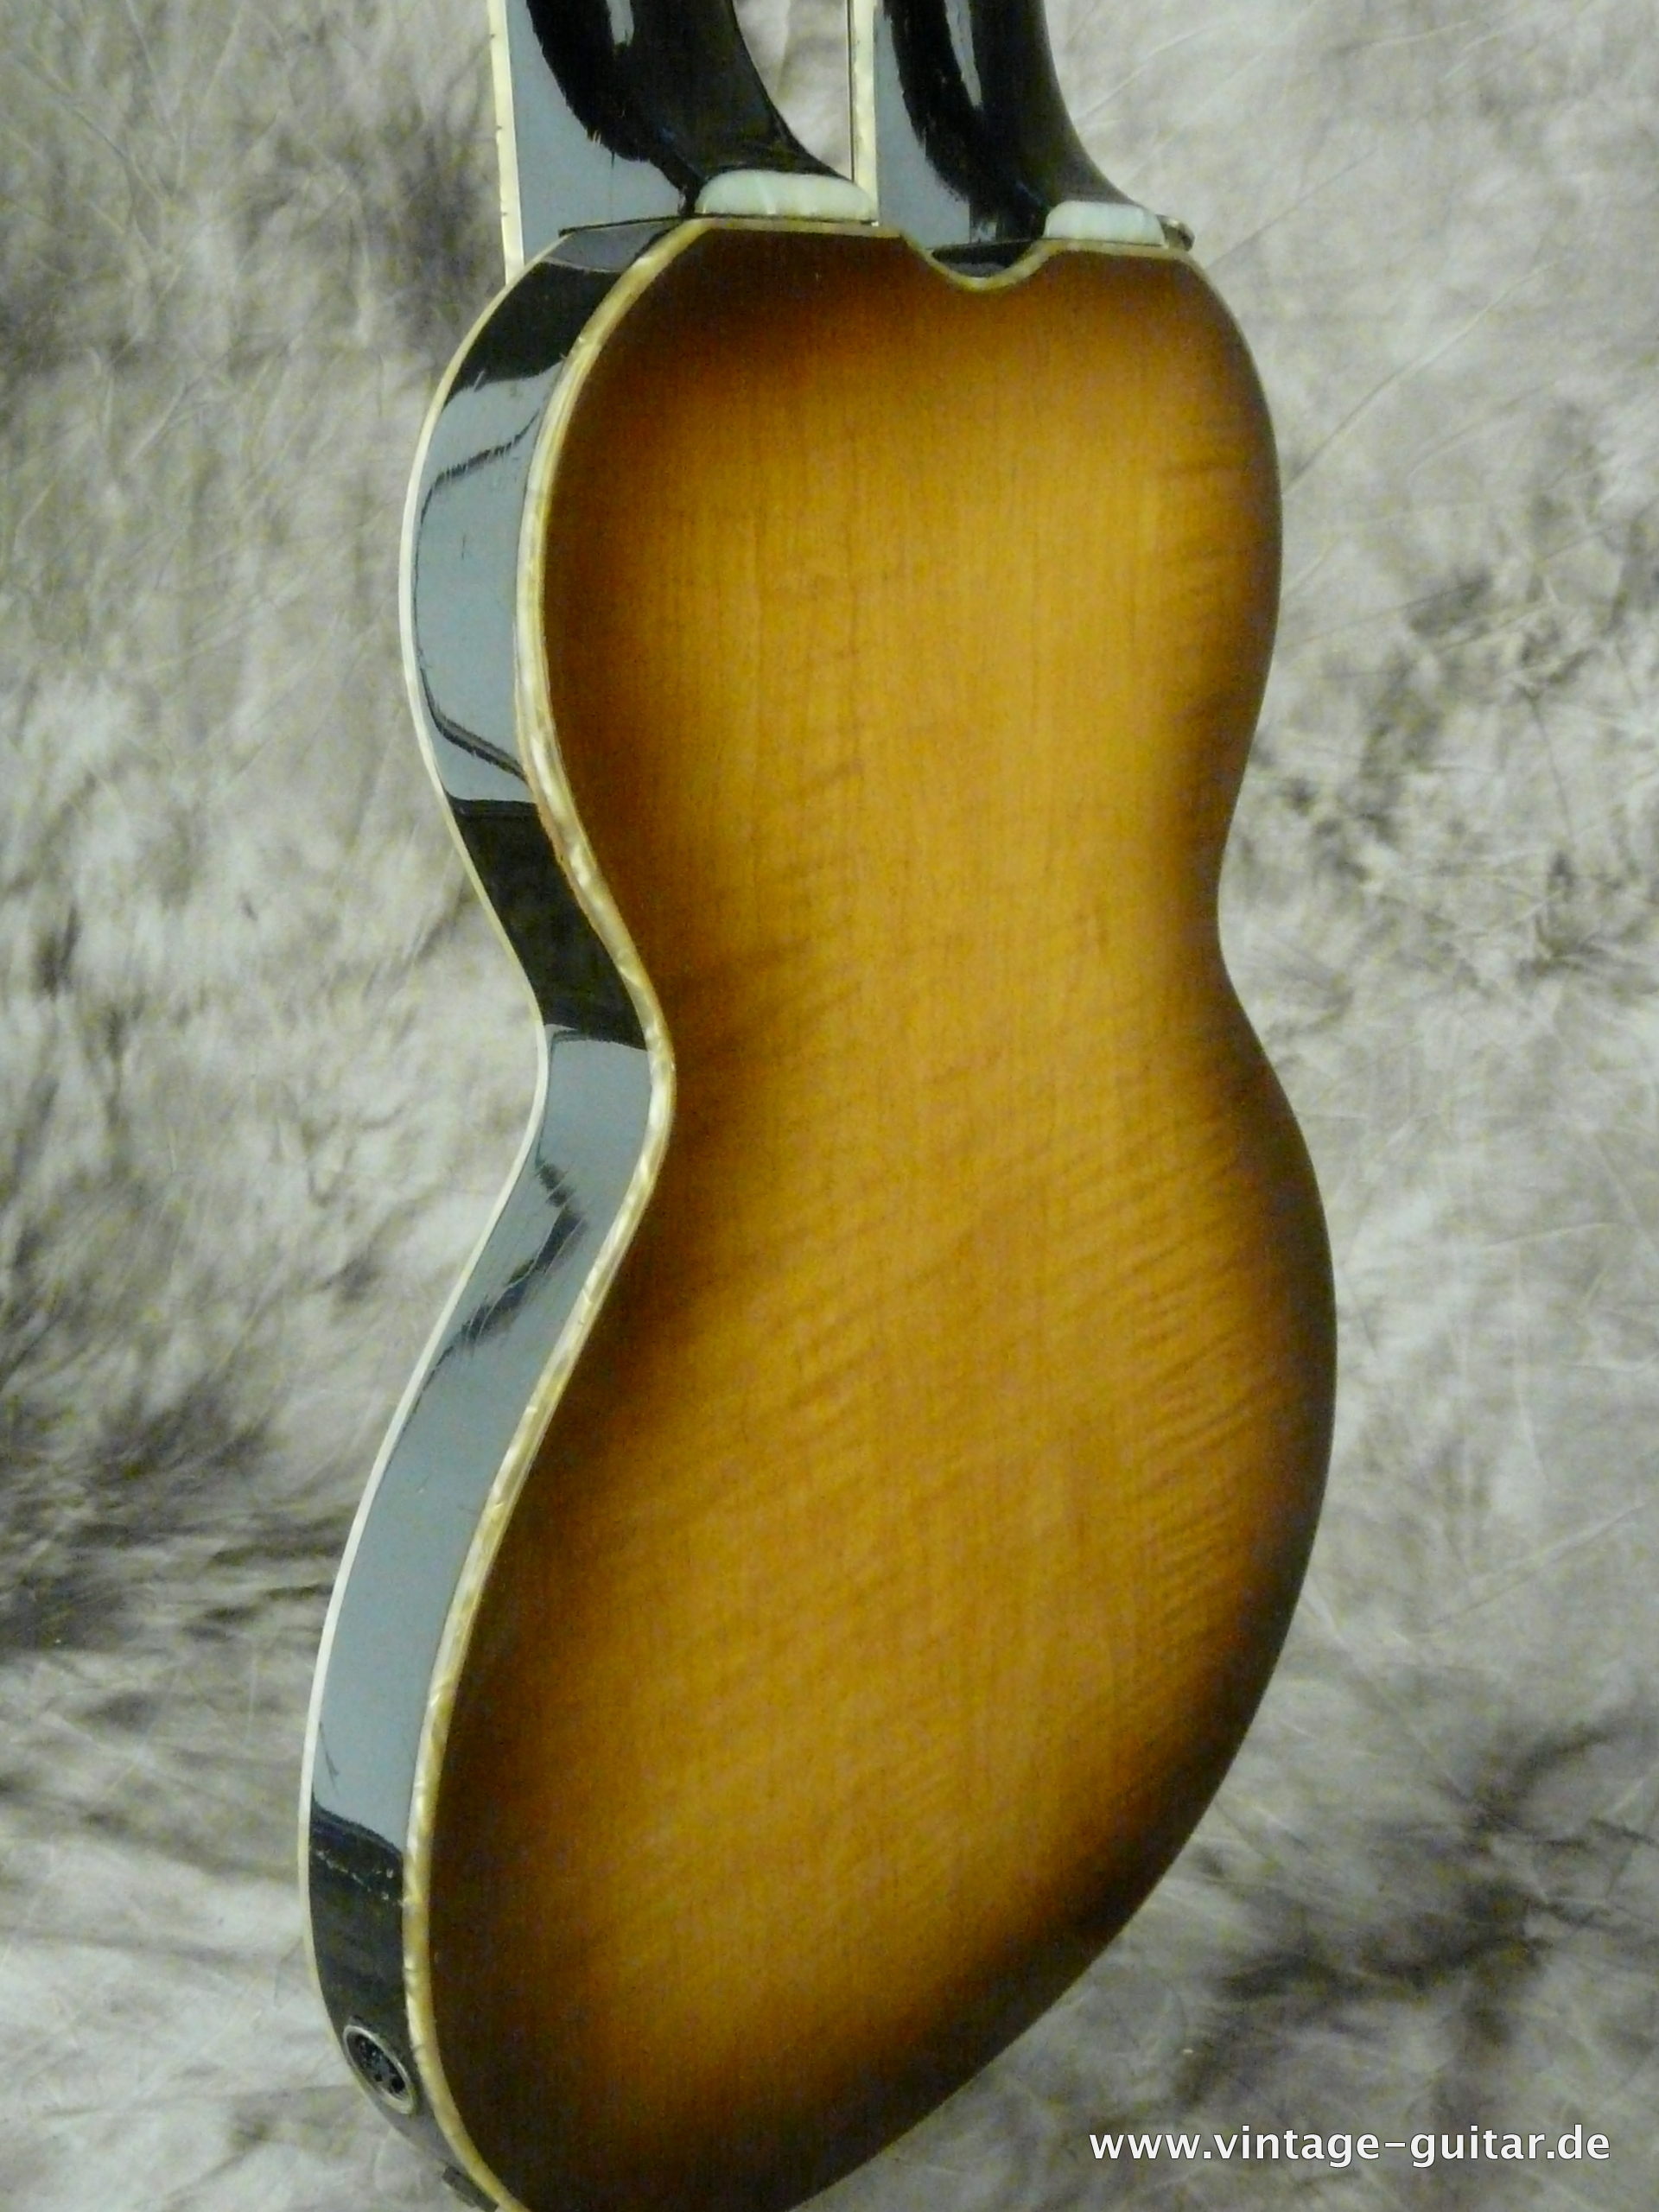 img/vintage/2648/Hofner-Double-Neck-Guitar-and-Bass-Model-191-013.JPG